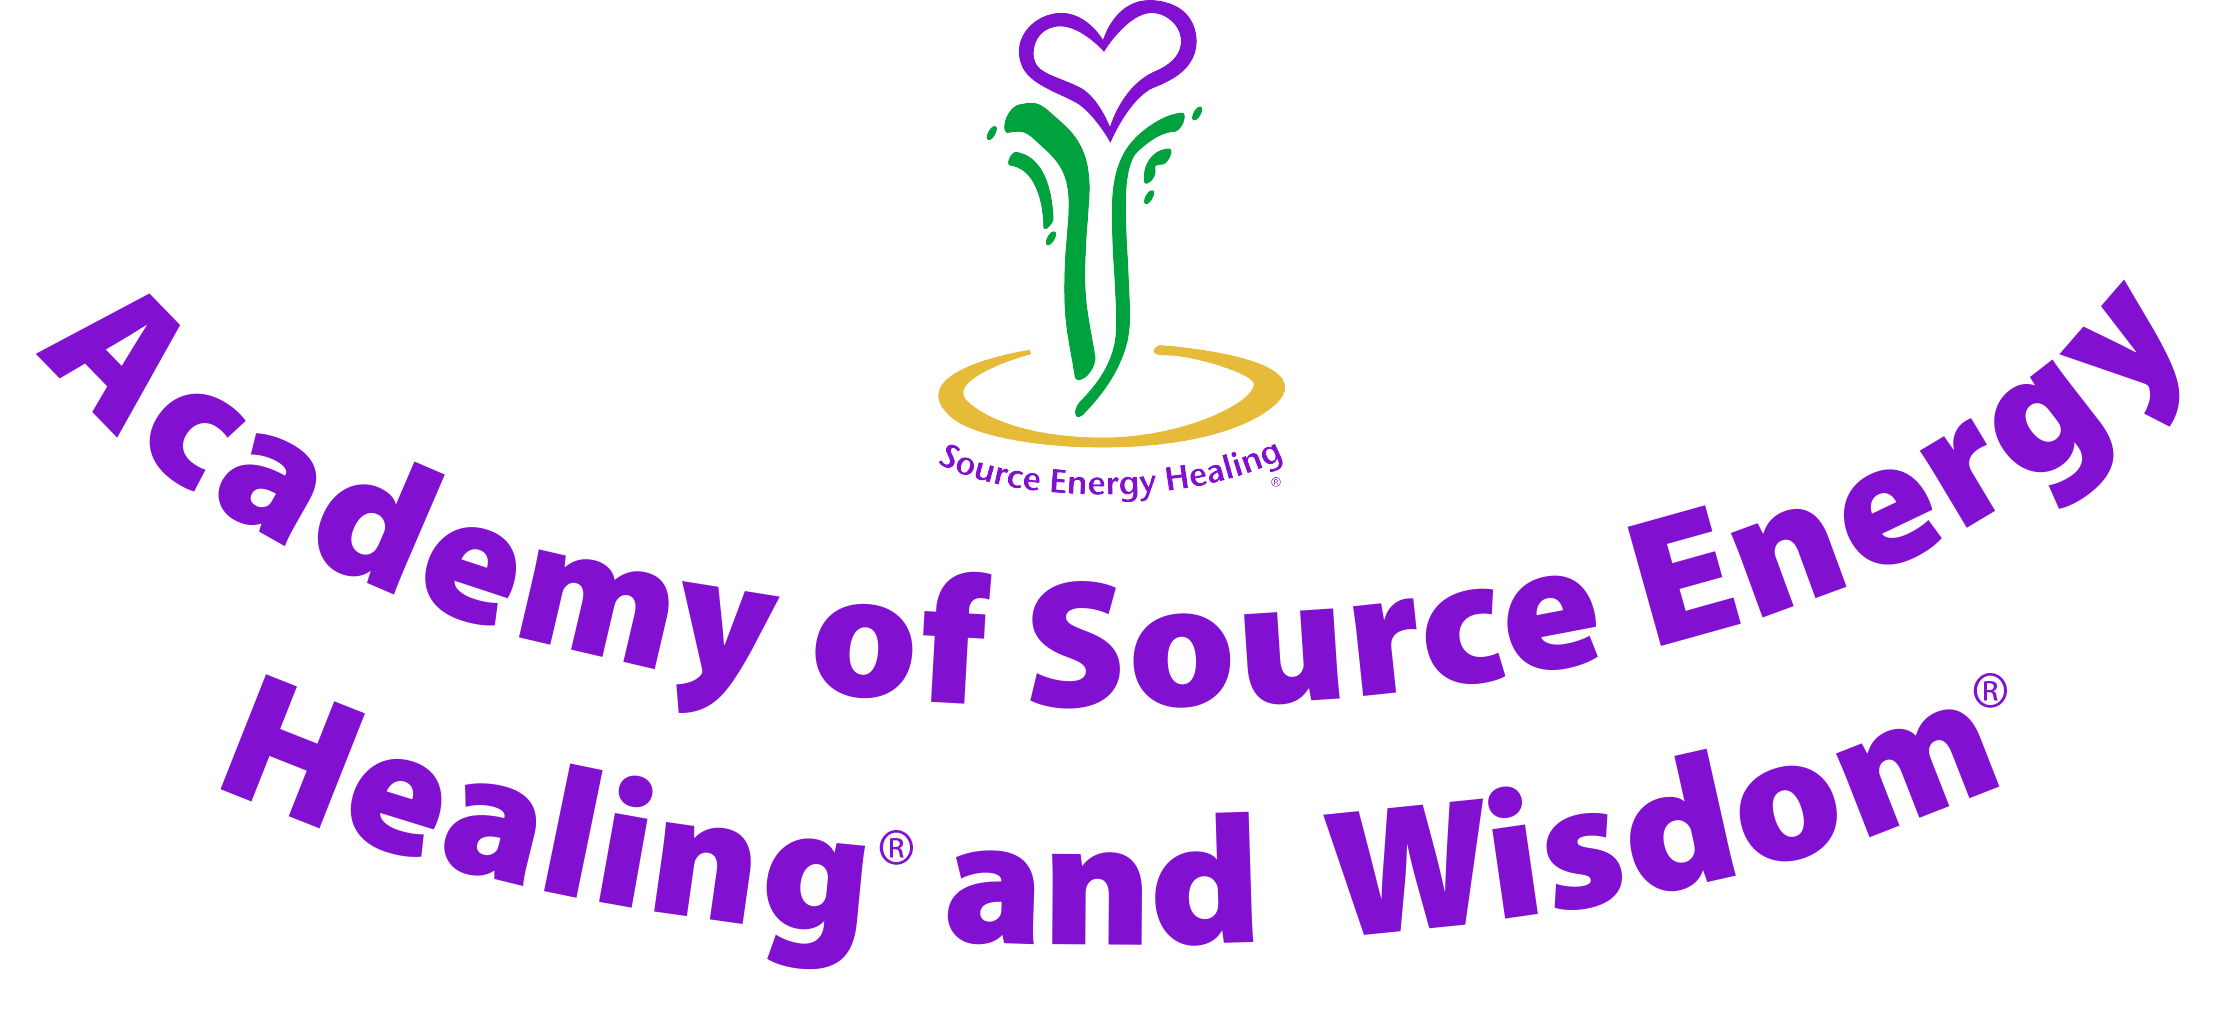 The Academy of source Energy Healing and Wisdom Logo